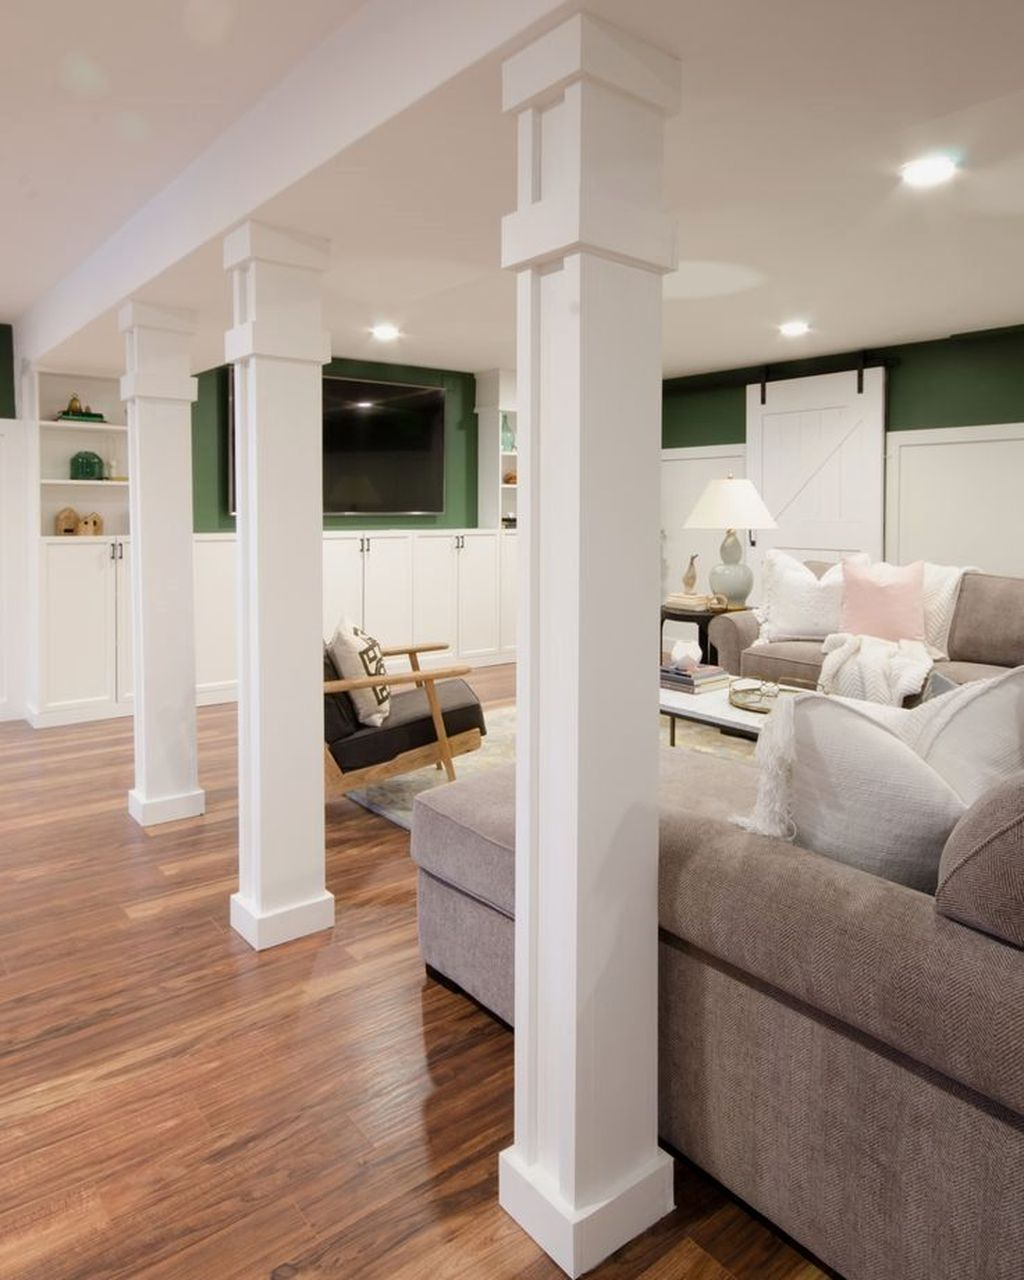 Stunning Basement Remodel Ideas Be A Beautiful Living Space 01